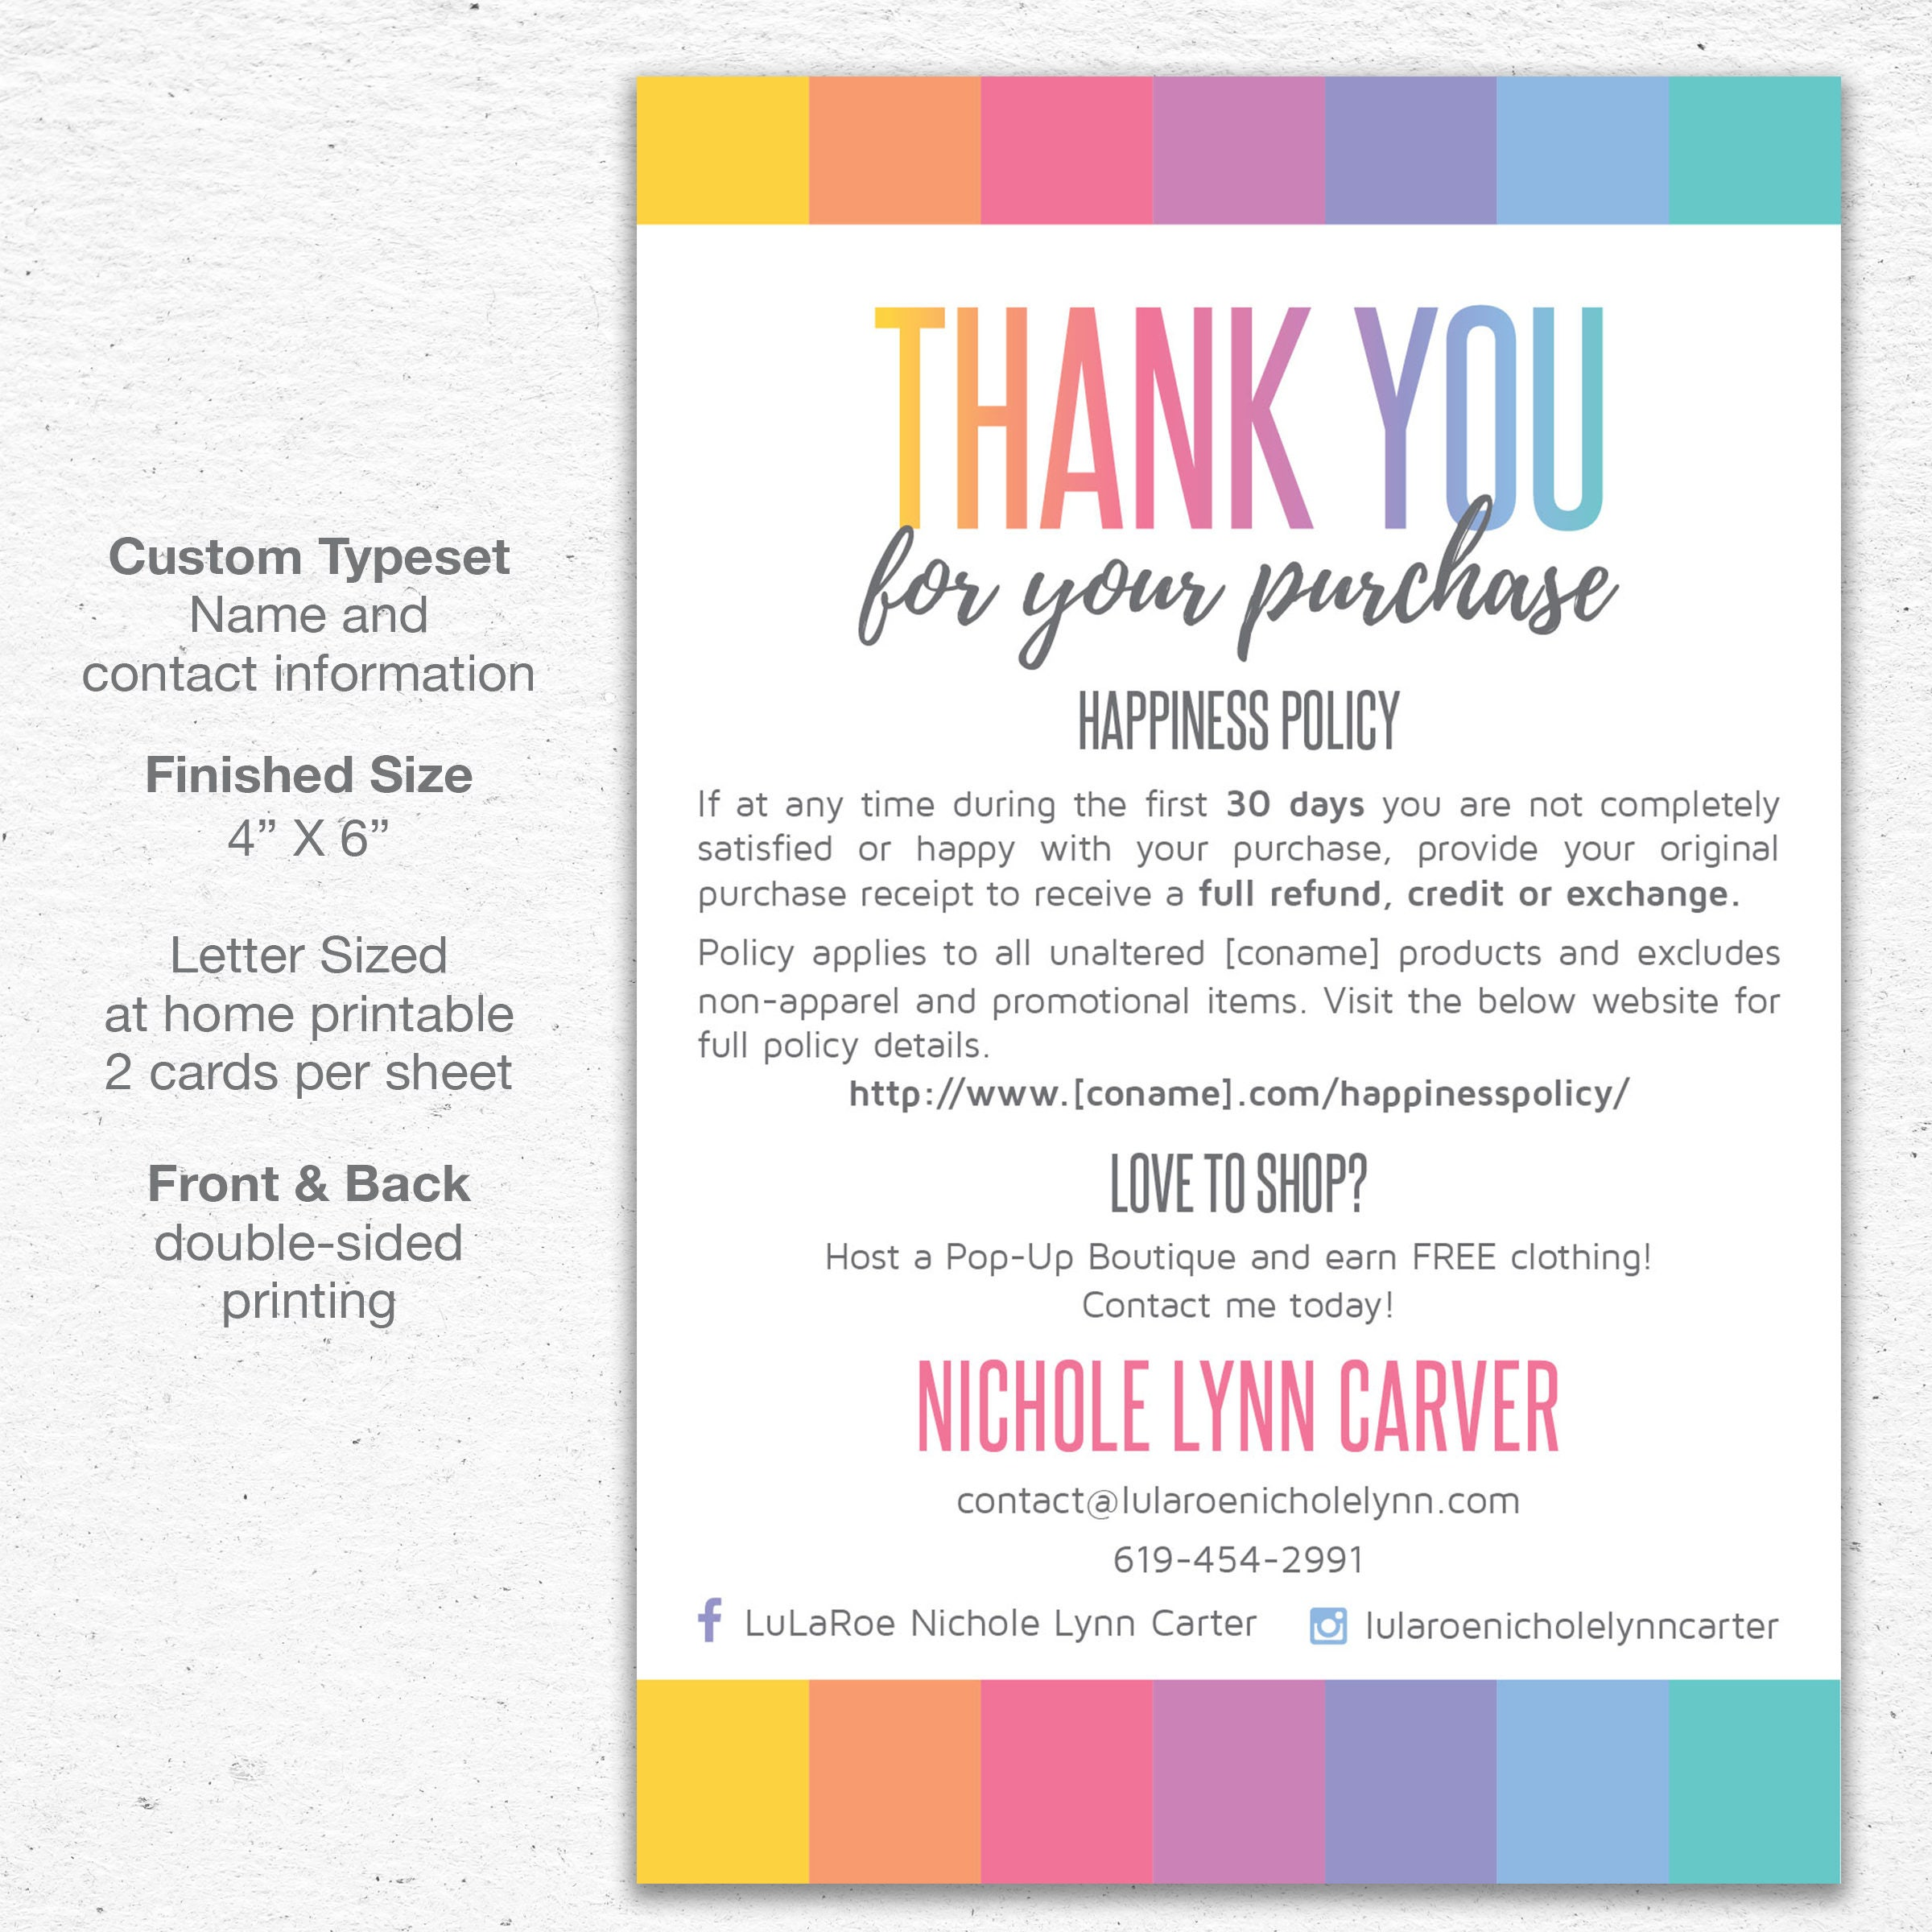 Thank You Care Card Postcard 4x6 Print at Home